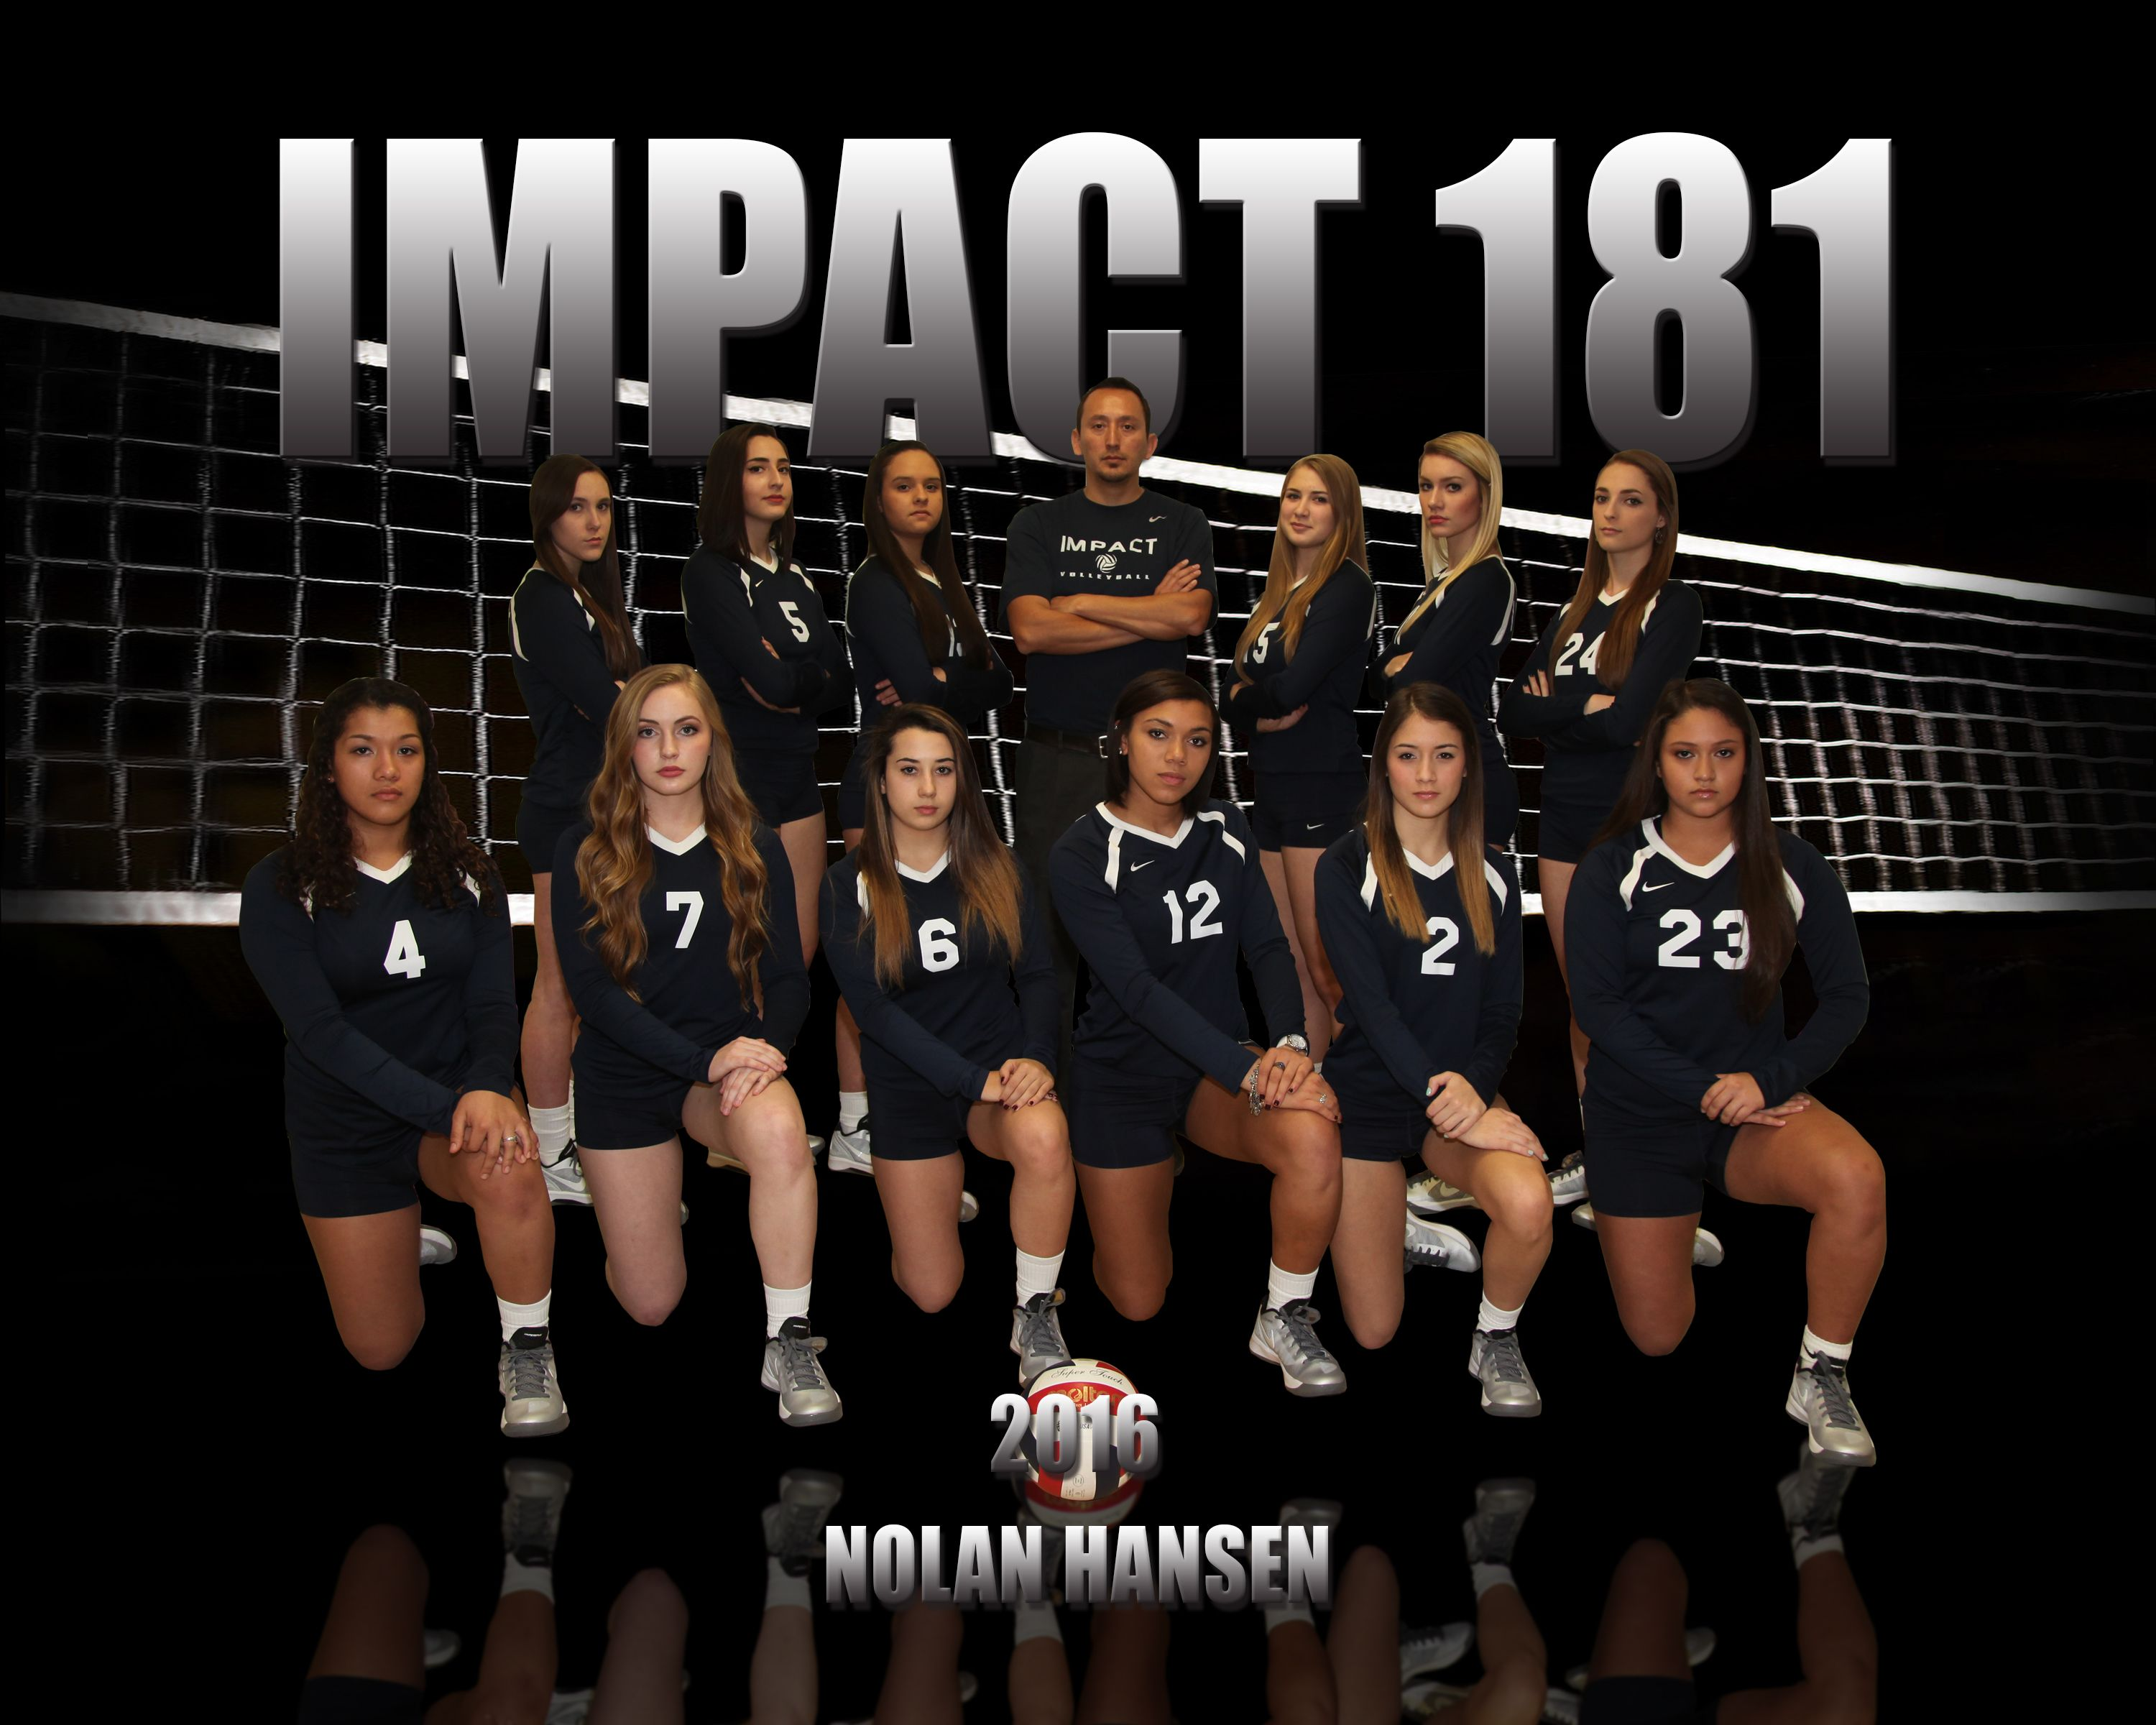 Highschool Volleyball Teamphoto Photography Sanantonio Sports Team Photography Team Photography Team Photos